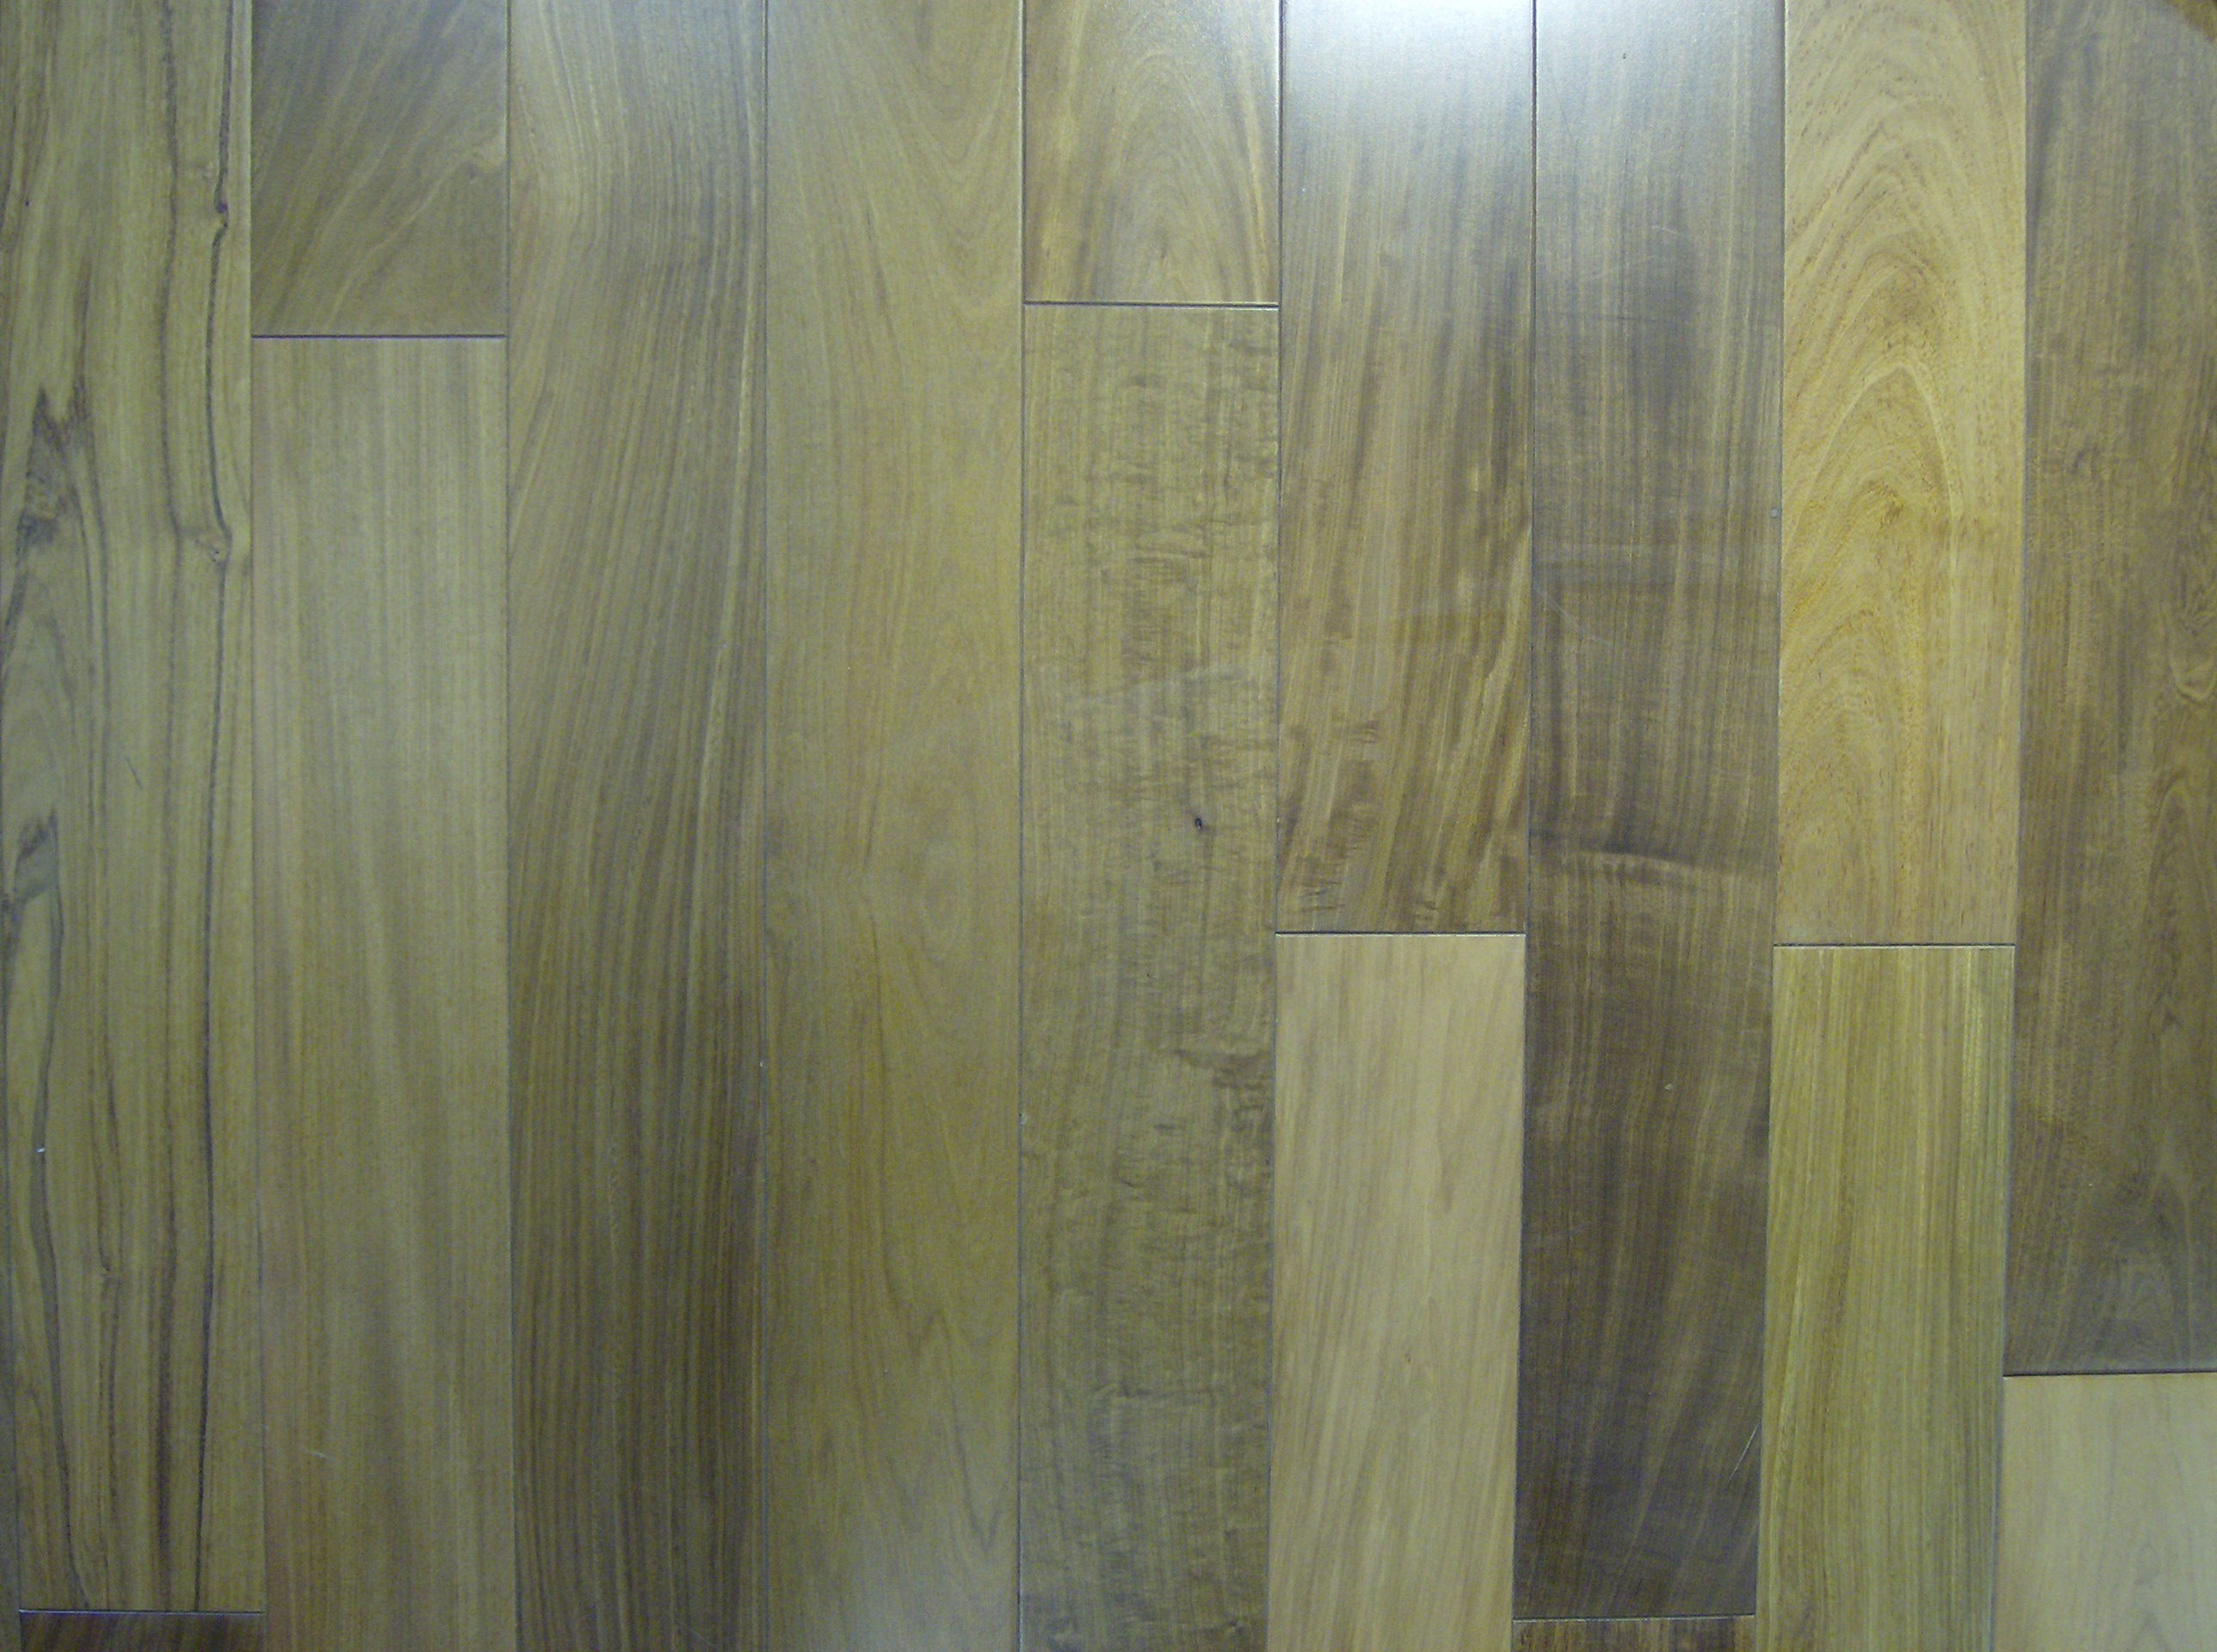 Unfinished Ipe / Brazilian Walnut Flooring